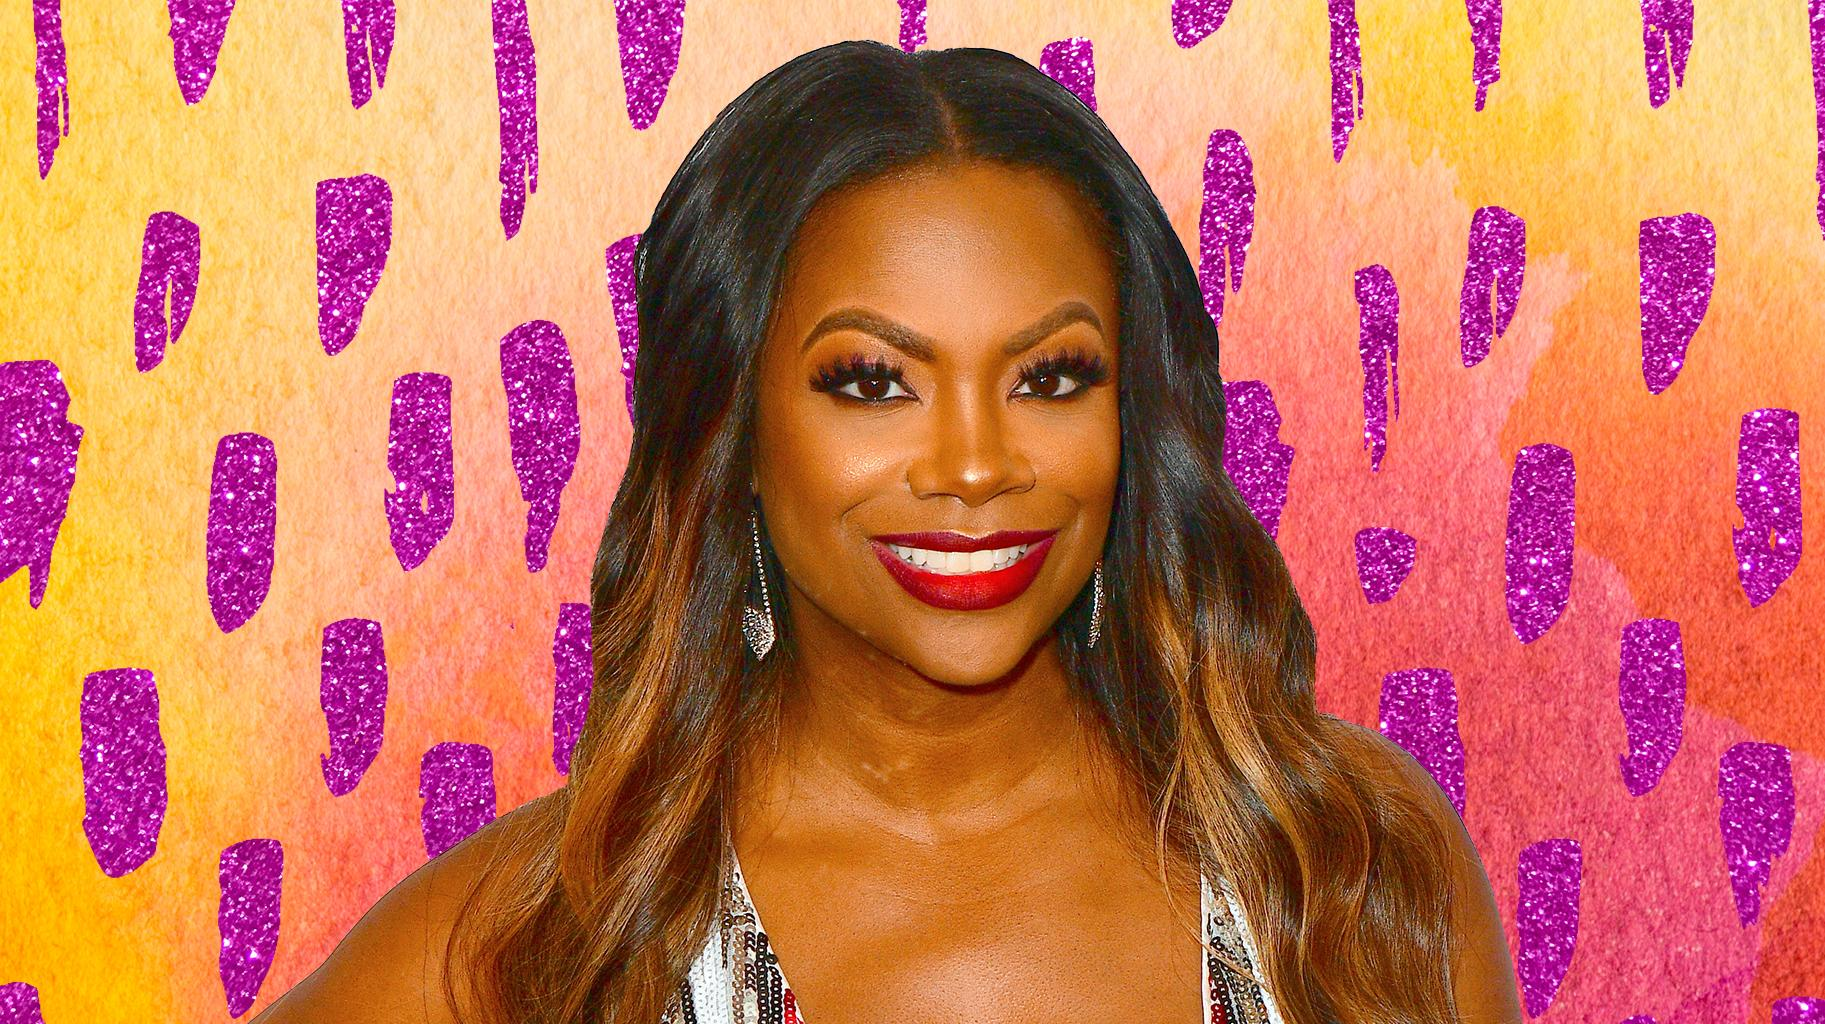 Kandi Burruss Makes Fans Smile With A Throwback Photo From The '90s